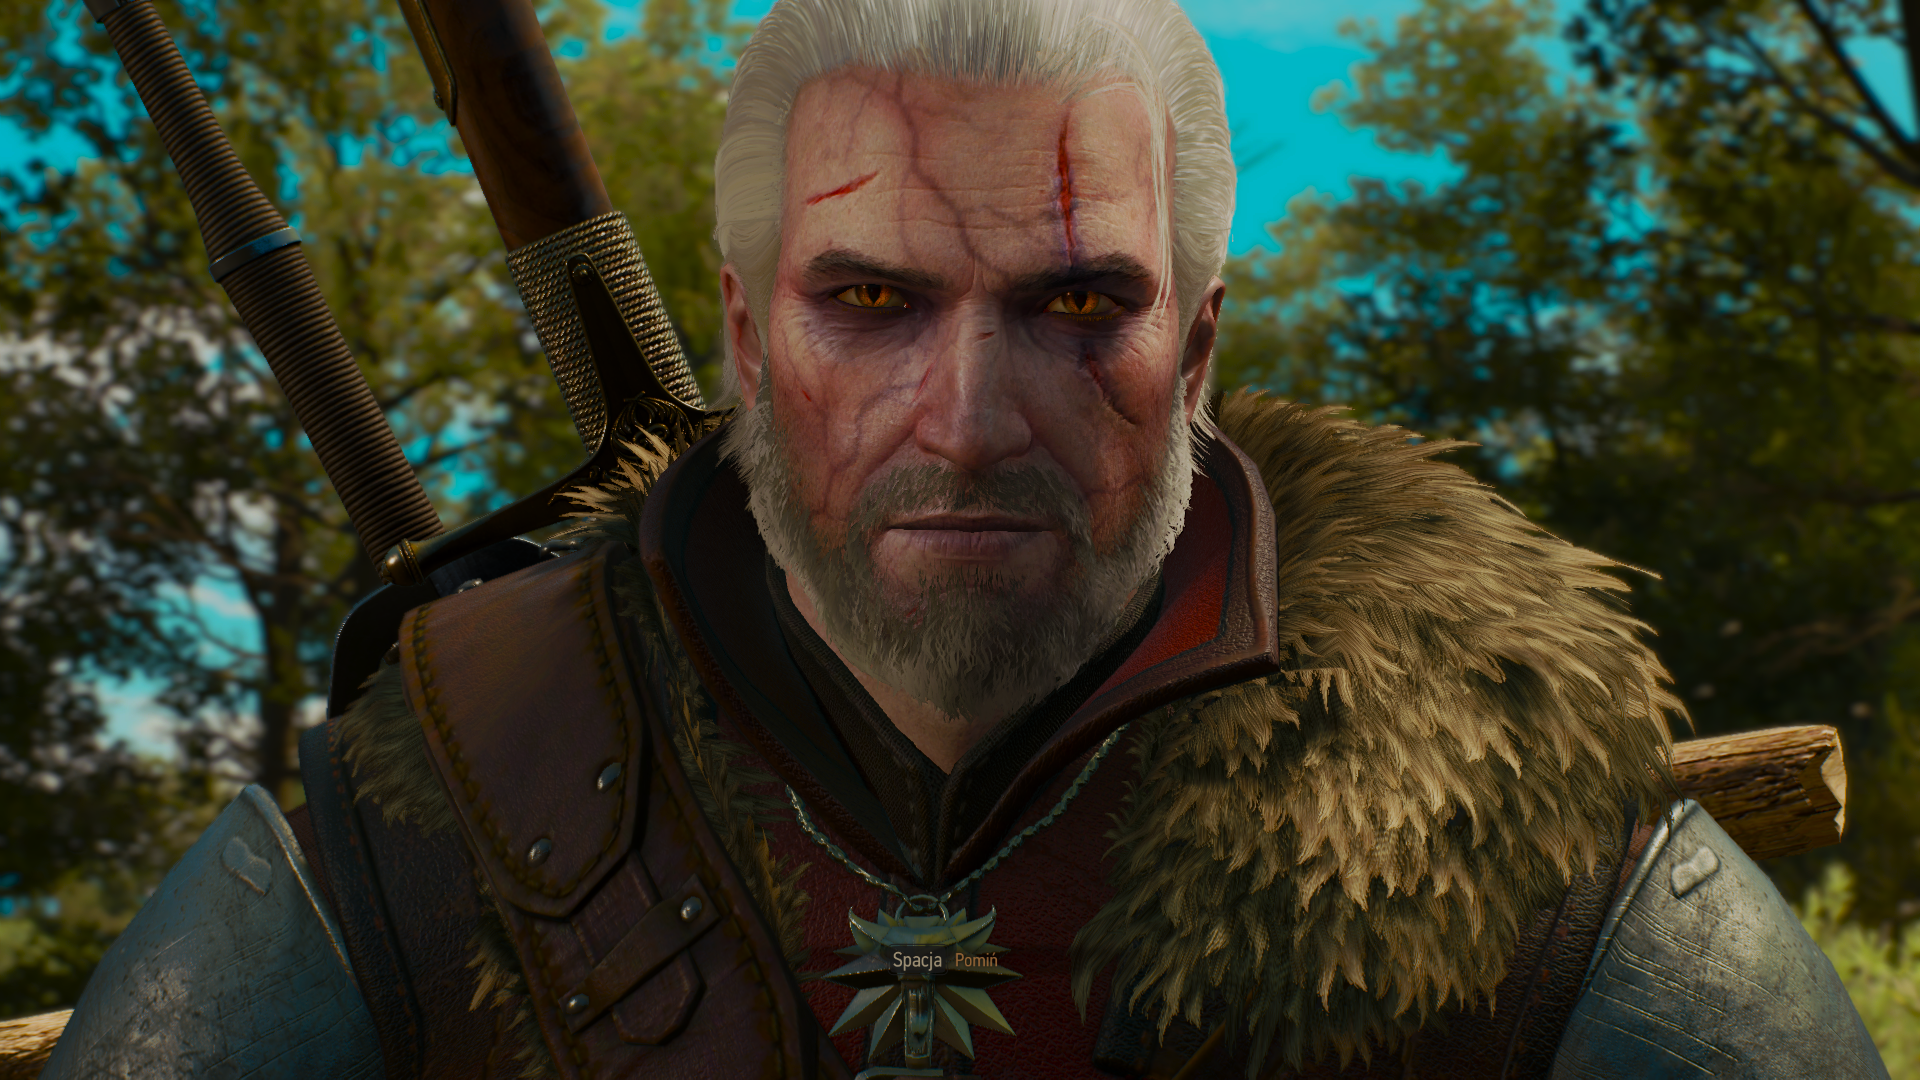 The Witcher 3 27.12.2018 22_23_13.png - Witcher 3: Wild Hunt, the